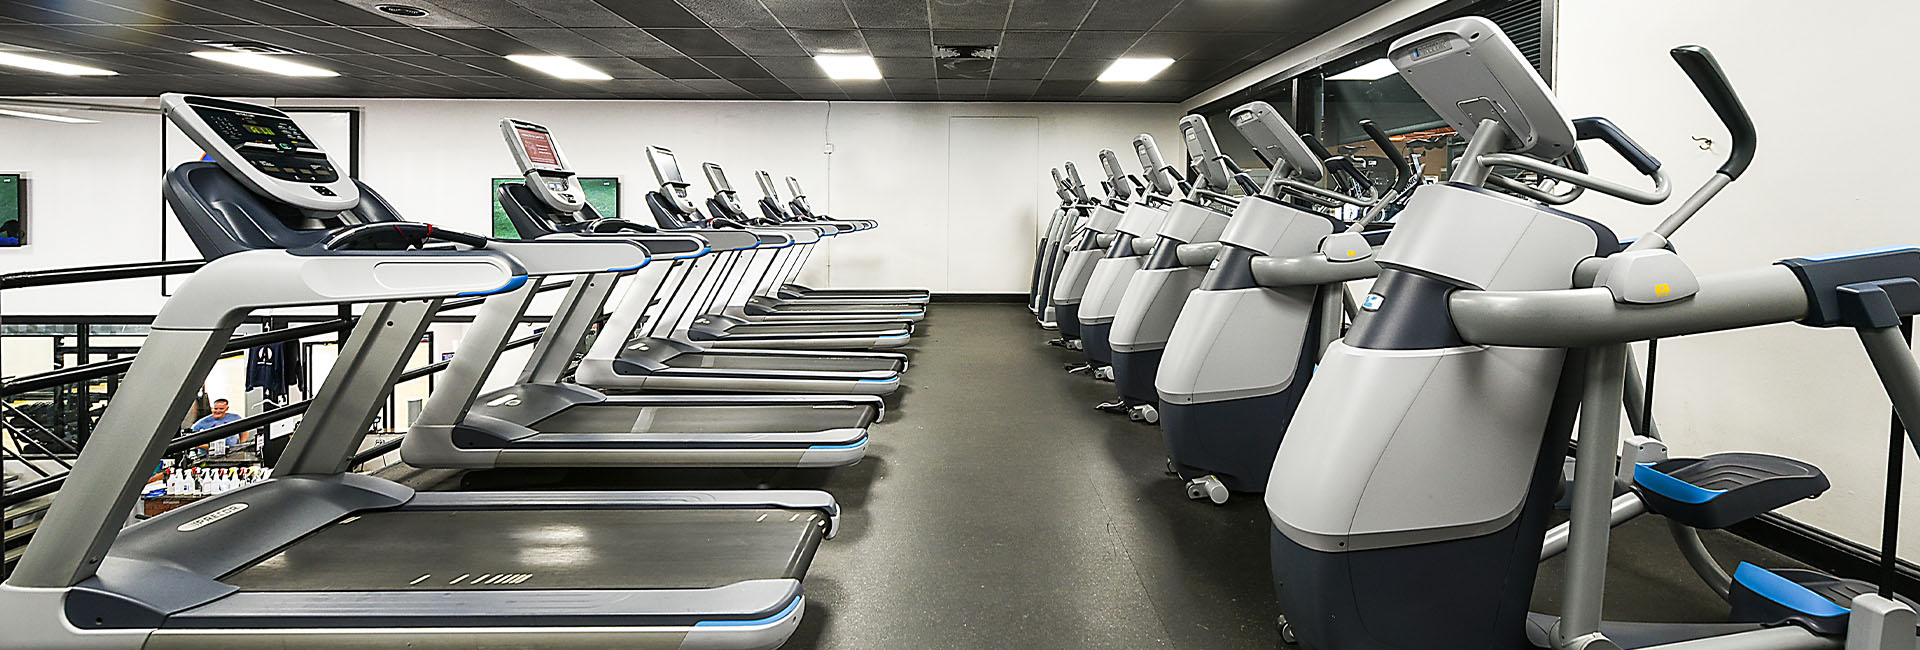 rows of treadmills and cardio equipment